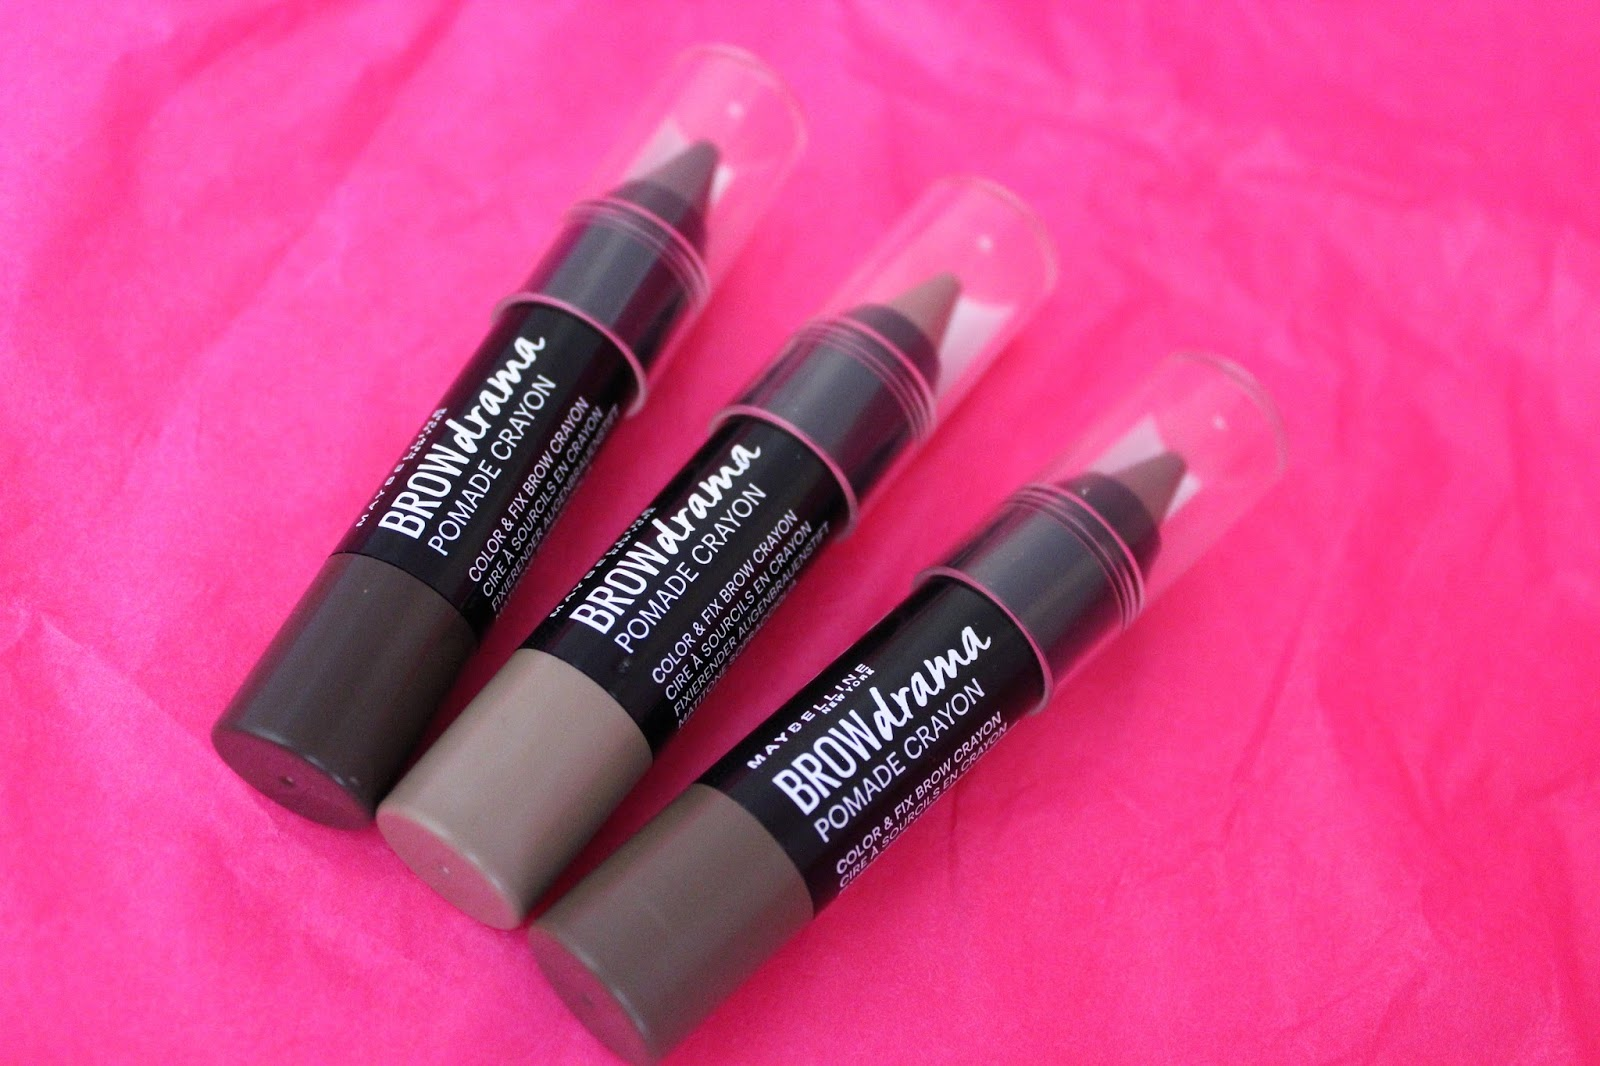 c019399ece9 Maybelline Brow Drama Pomade Crayons | Bags of Beauty | Bloglovin'